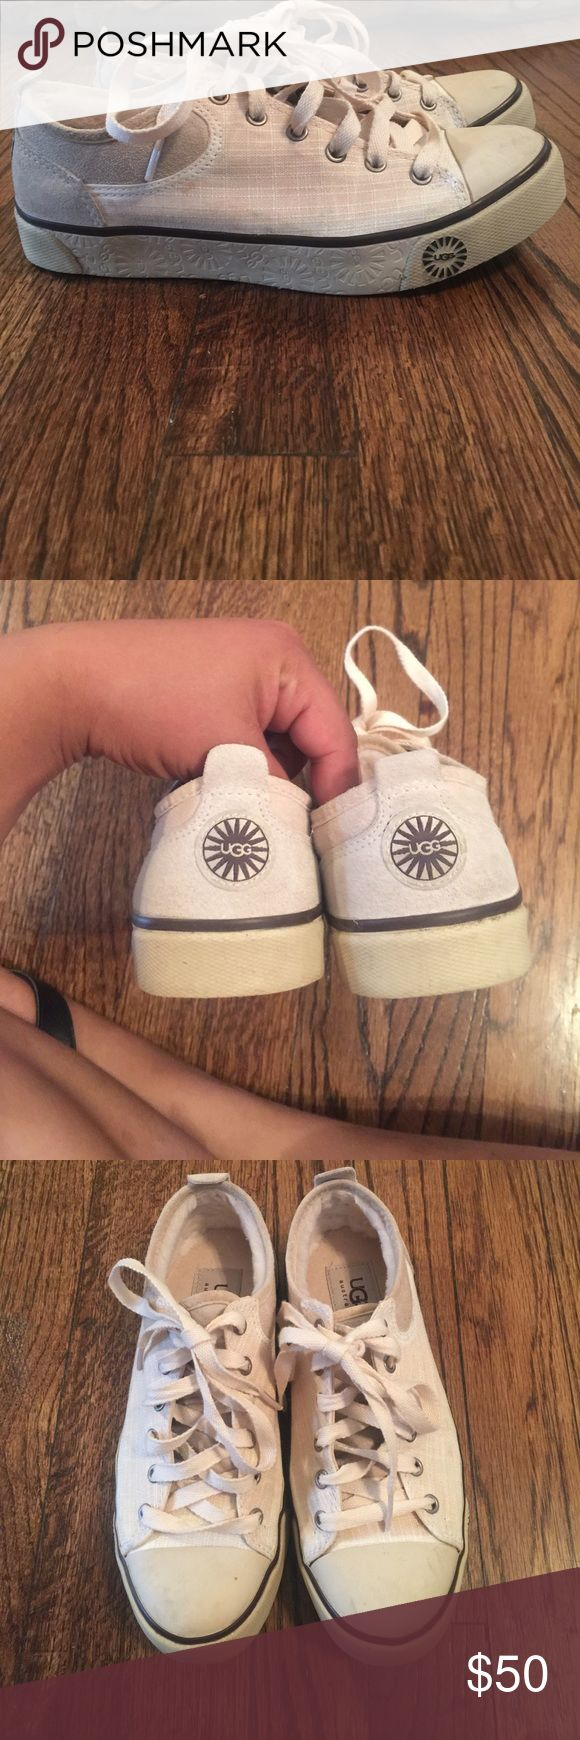 Ugg sneakers in size 5.5 with inner lining These ugg tennis shoes are lined for added warmth and comfort. They are in good used condition. Logo on side bottom and back. UGG Shoes Sneakers